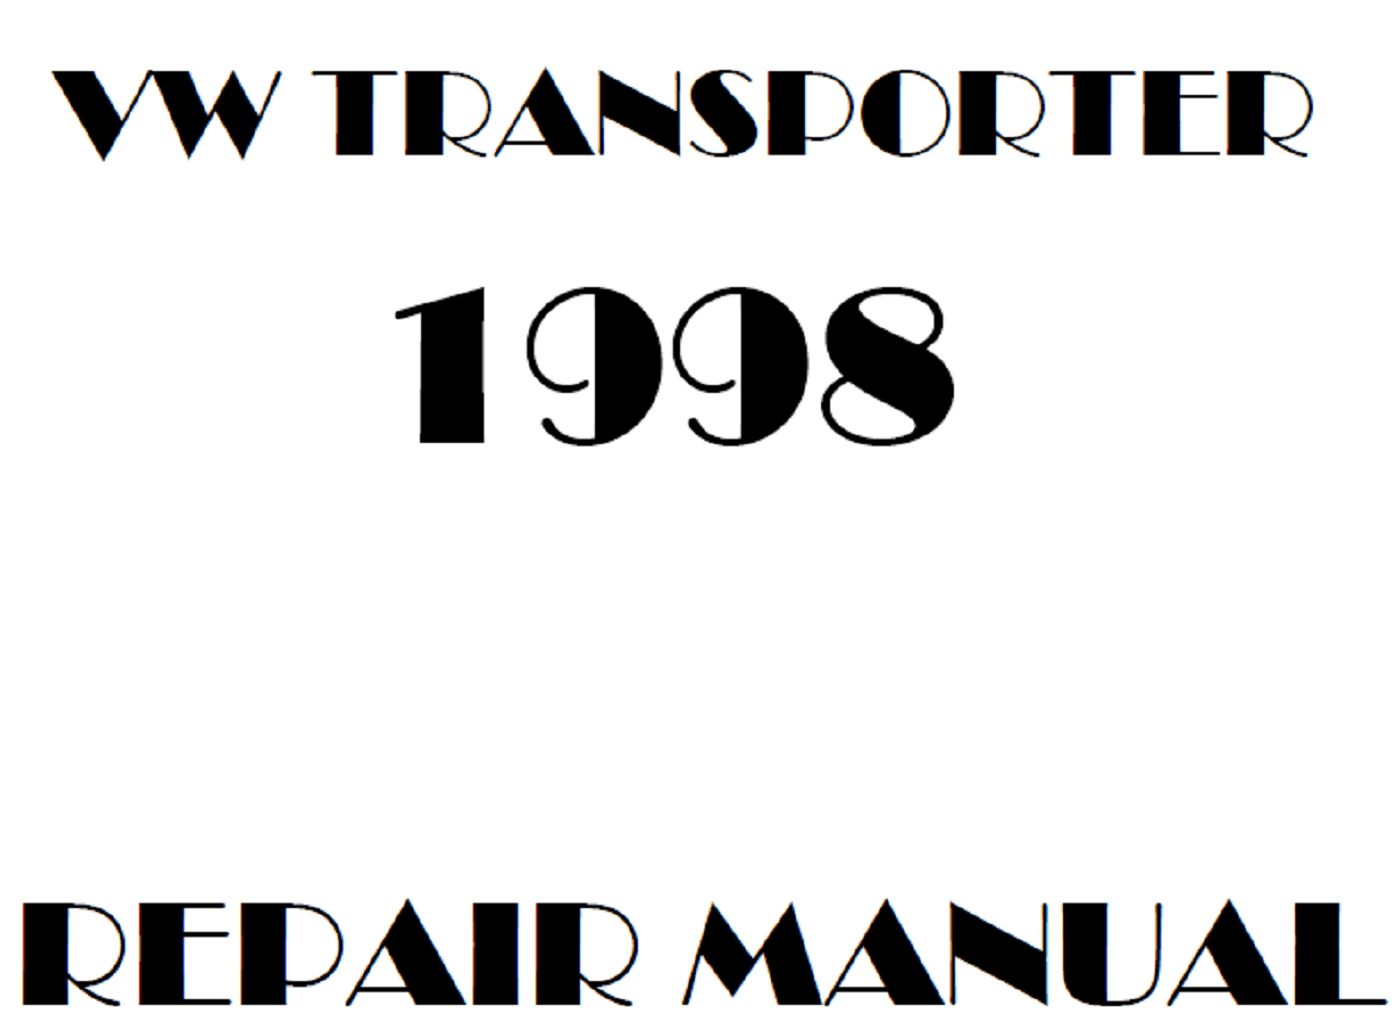 1998 Volkswagen Transporter repair manual